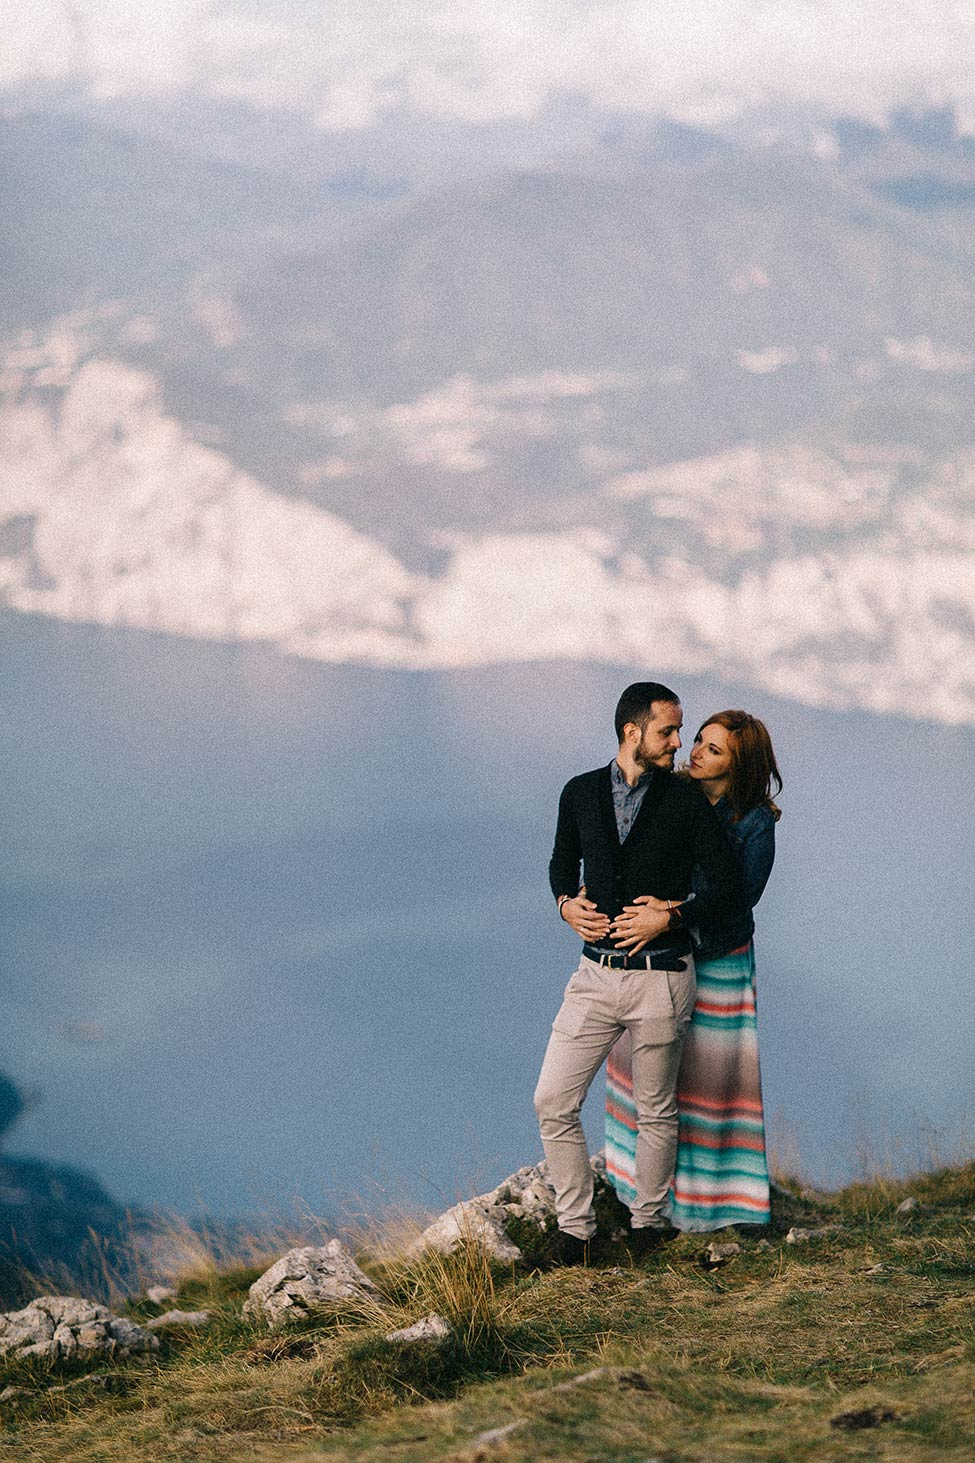 Mountain side elopement in Italy.